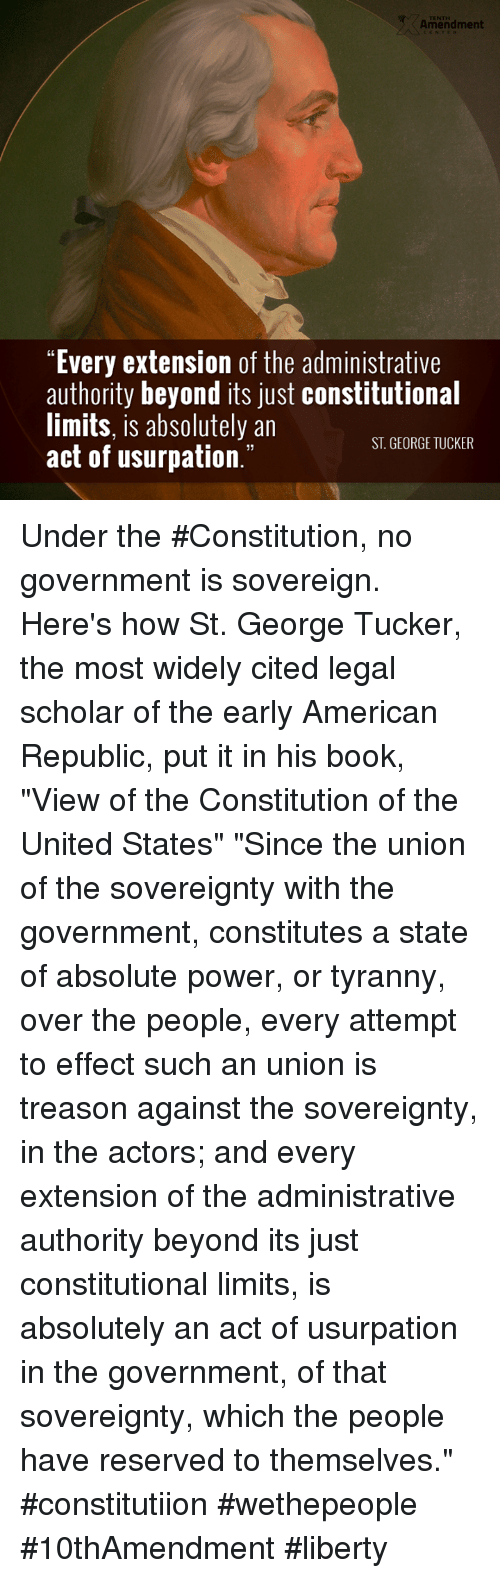 """Memes, Constitution, and Limited: Amendment  """"Every extension of the administrative  authority beyond its just constitutional  limits, is absolutely an  ST GEORGE TUCKER  act of usurpation Under the #Constitution, no government is sovereign.   Here's how St. George Tucker, the most widely cited legal scholar of the early American Republic, put it in his book, """"View of the Constitution of the United States""""  """"Since the union of the sovereignty with the government, constitutes a state of absolute power, or tyranny, over the people, every attempt to effect such an union is treason against the sovereignty, in the actors; and every extension of the administrative authority beyond its just constitutional limits, is absolutely an act of usurpation in the government, of that sovereignty, which the people have reserved to themselves.""""  #constitutiion #wethepeople #10thAmendment #liberty"""